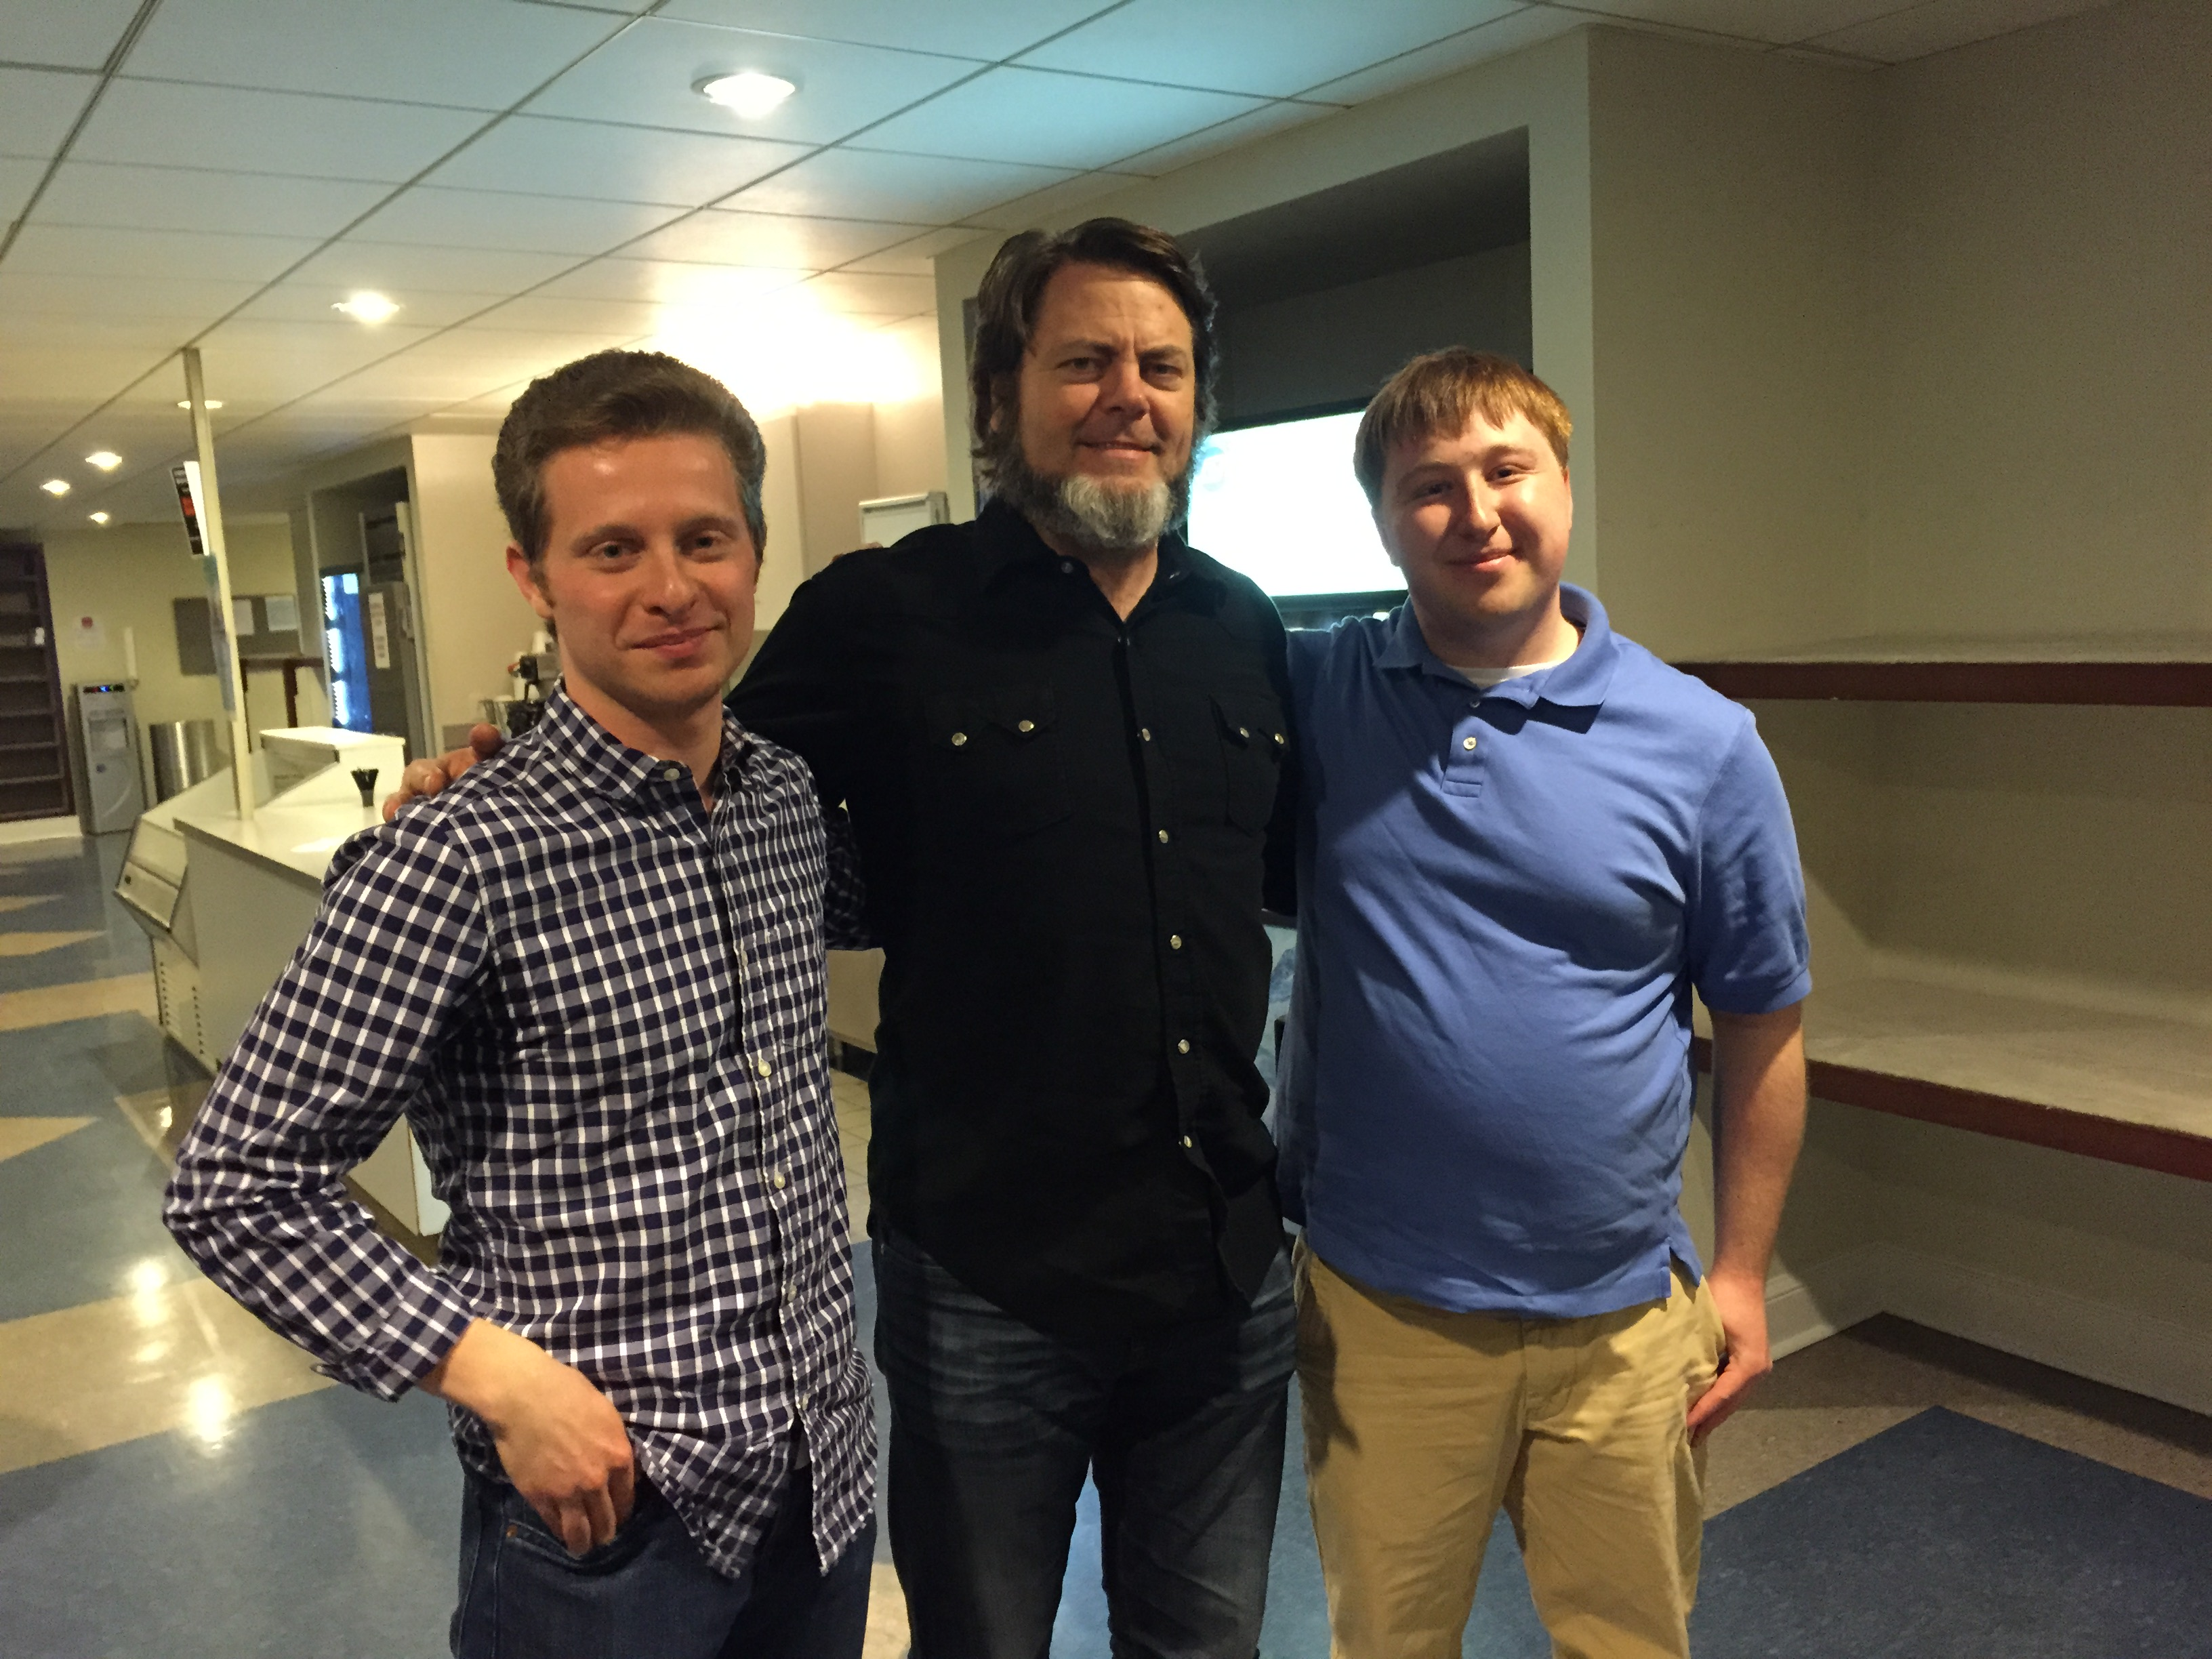 Nick Offerman on Max and Teddy in the Morning at Night (Sometimes)